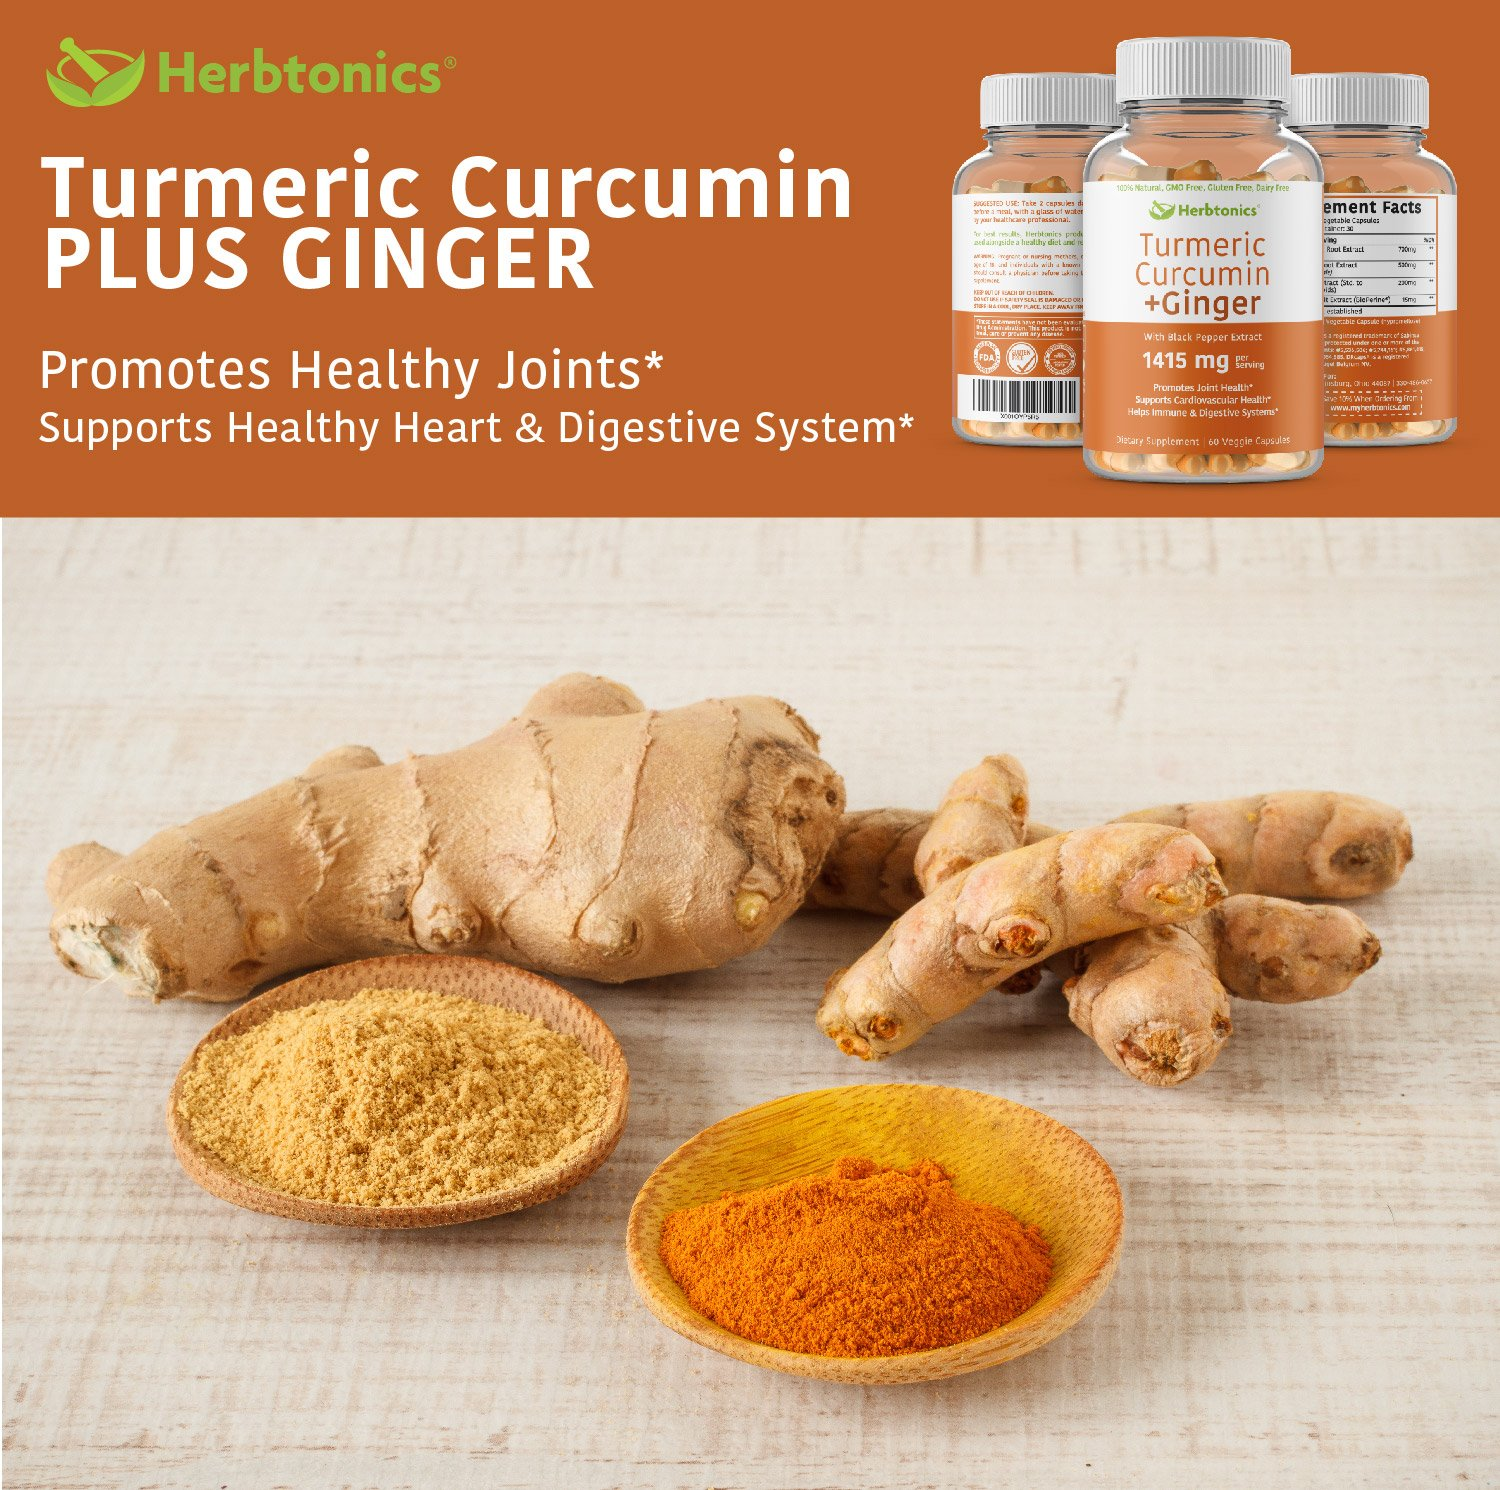 Organic Turmeric Curcumin and Ginger Capsules 1400mg with Black Pepper (Bioperine) l Joint Pain Relief Supplement, Anti-Inflammatory, Antioxidant 100% Natural- Tumeric with Ginger, Arthritis Support